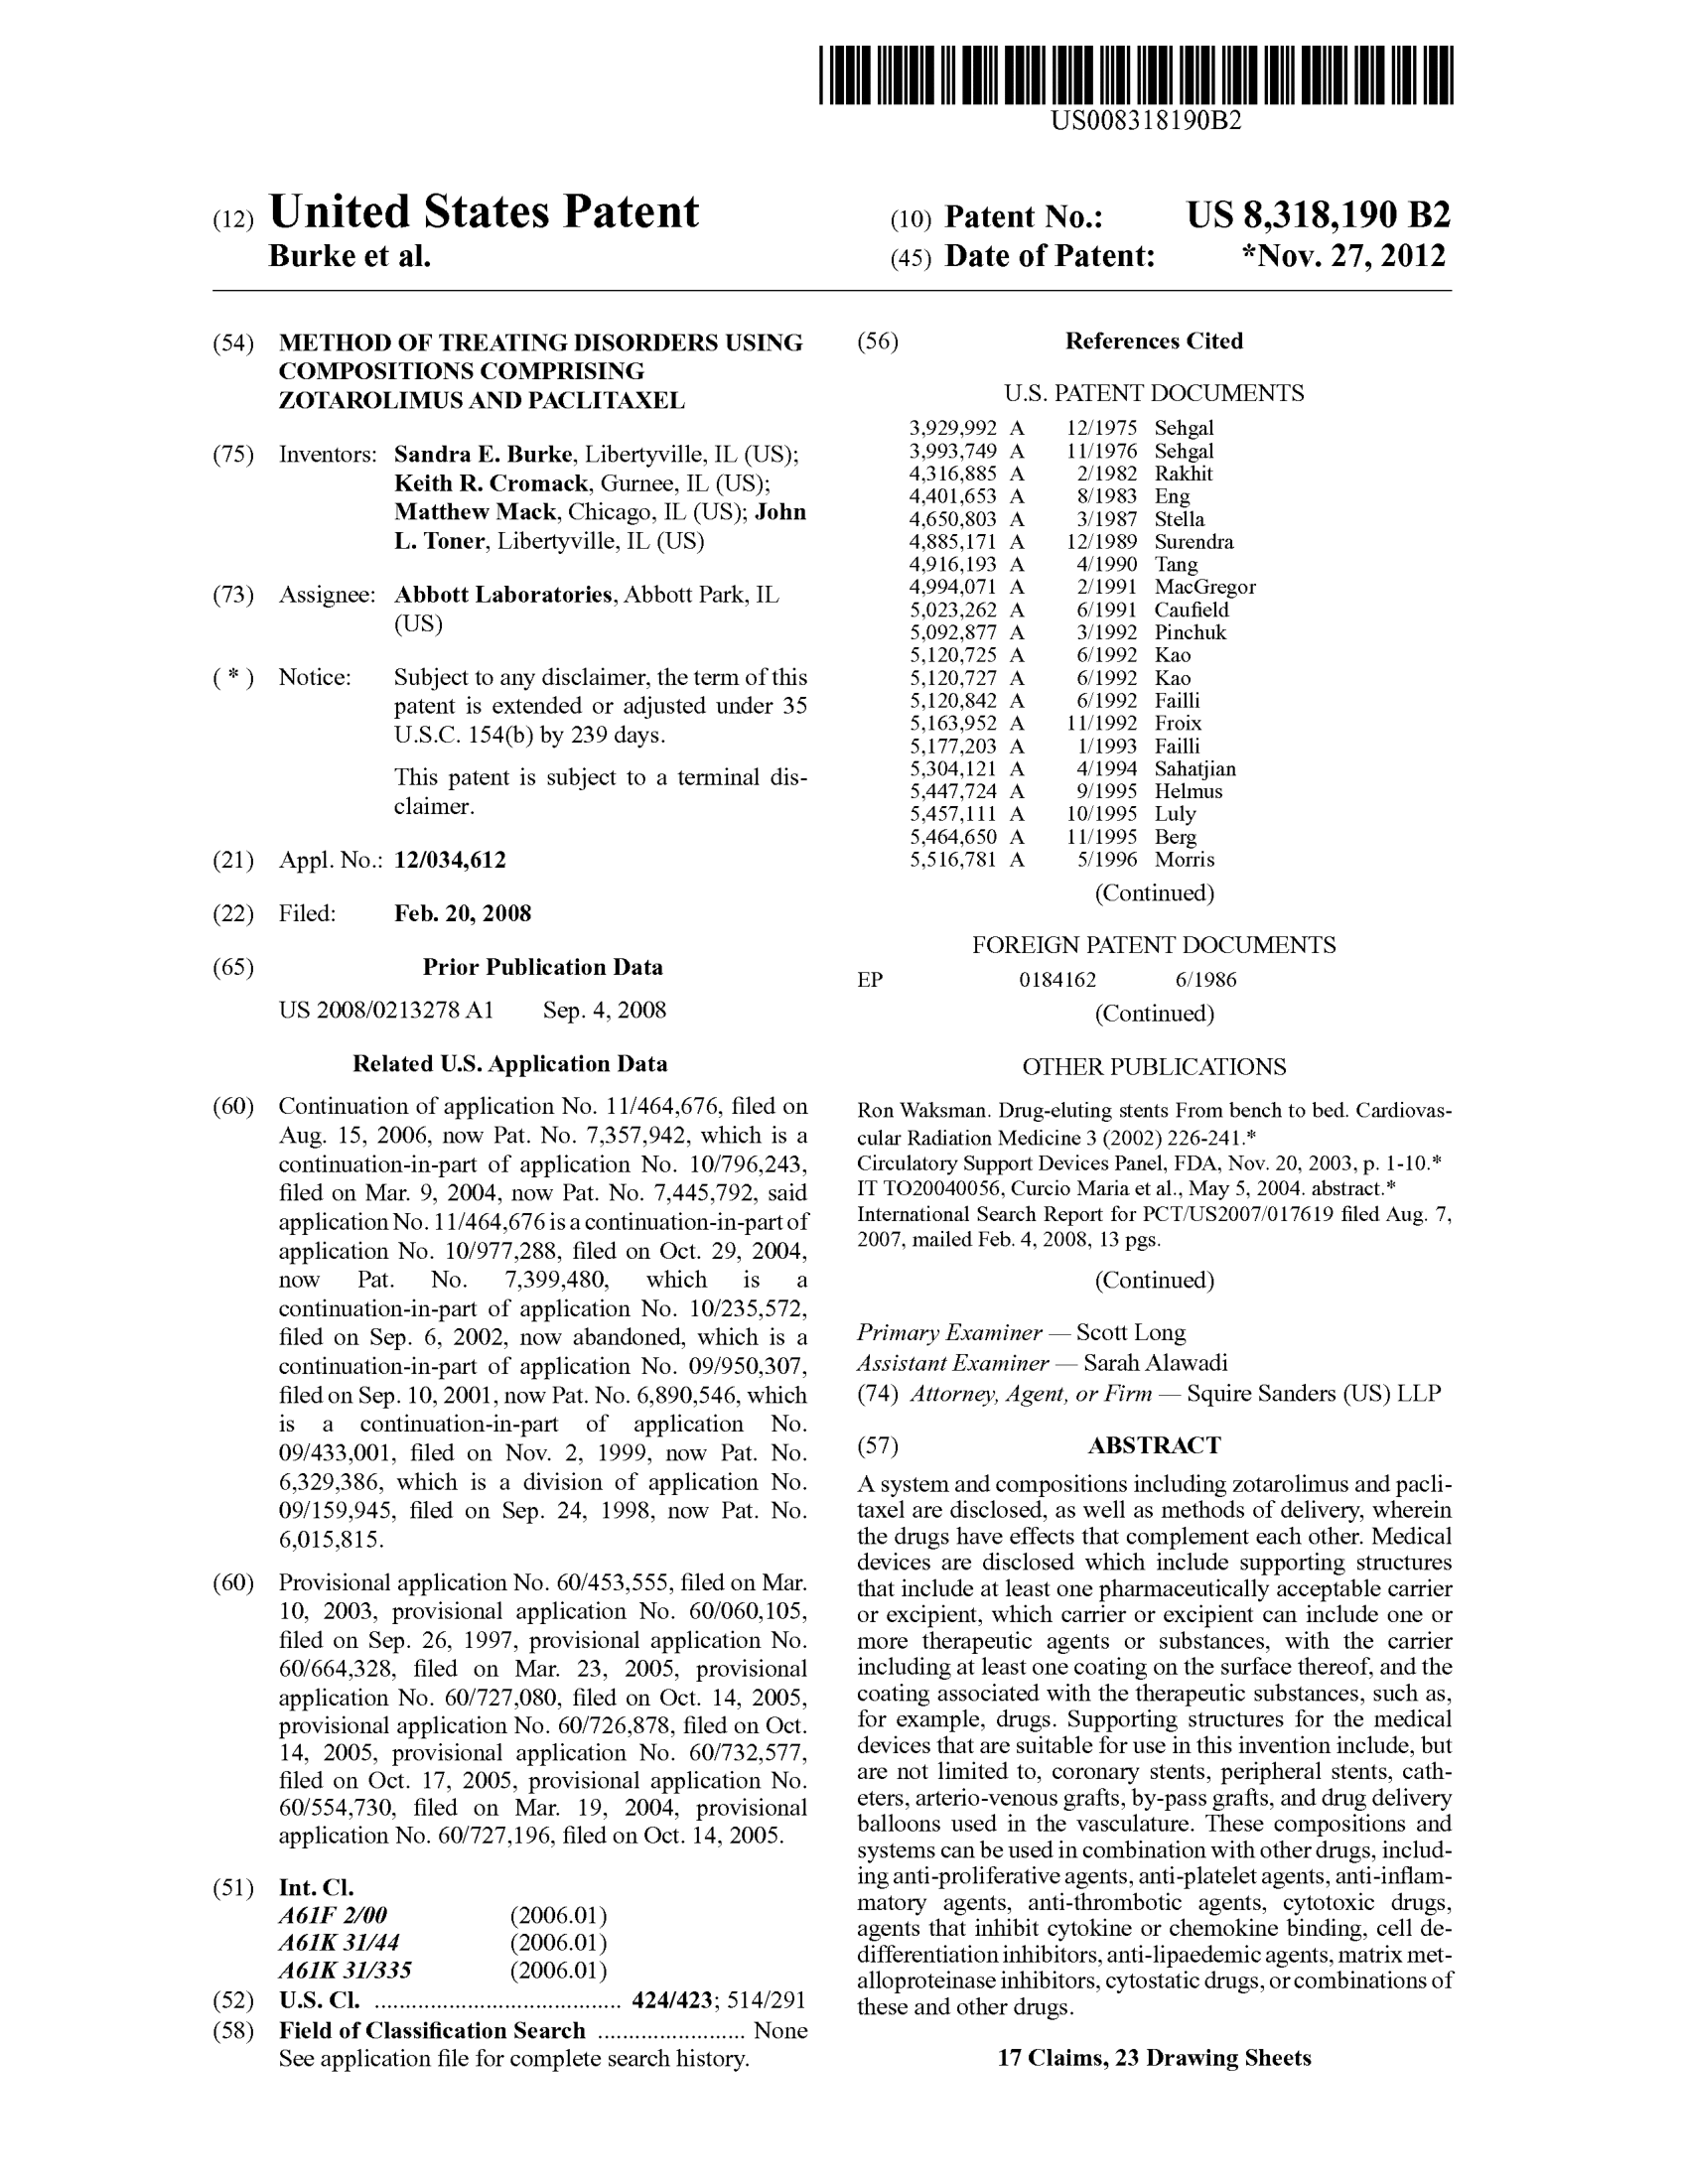 Patent4.png